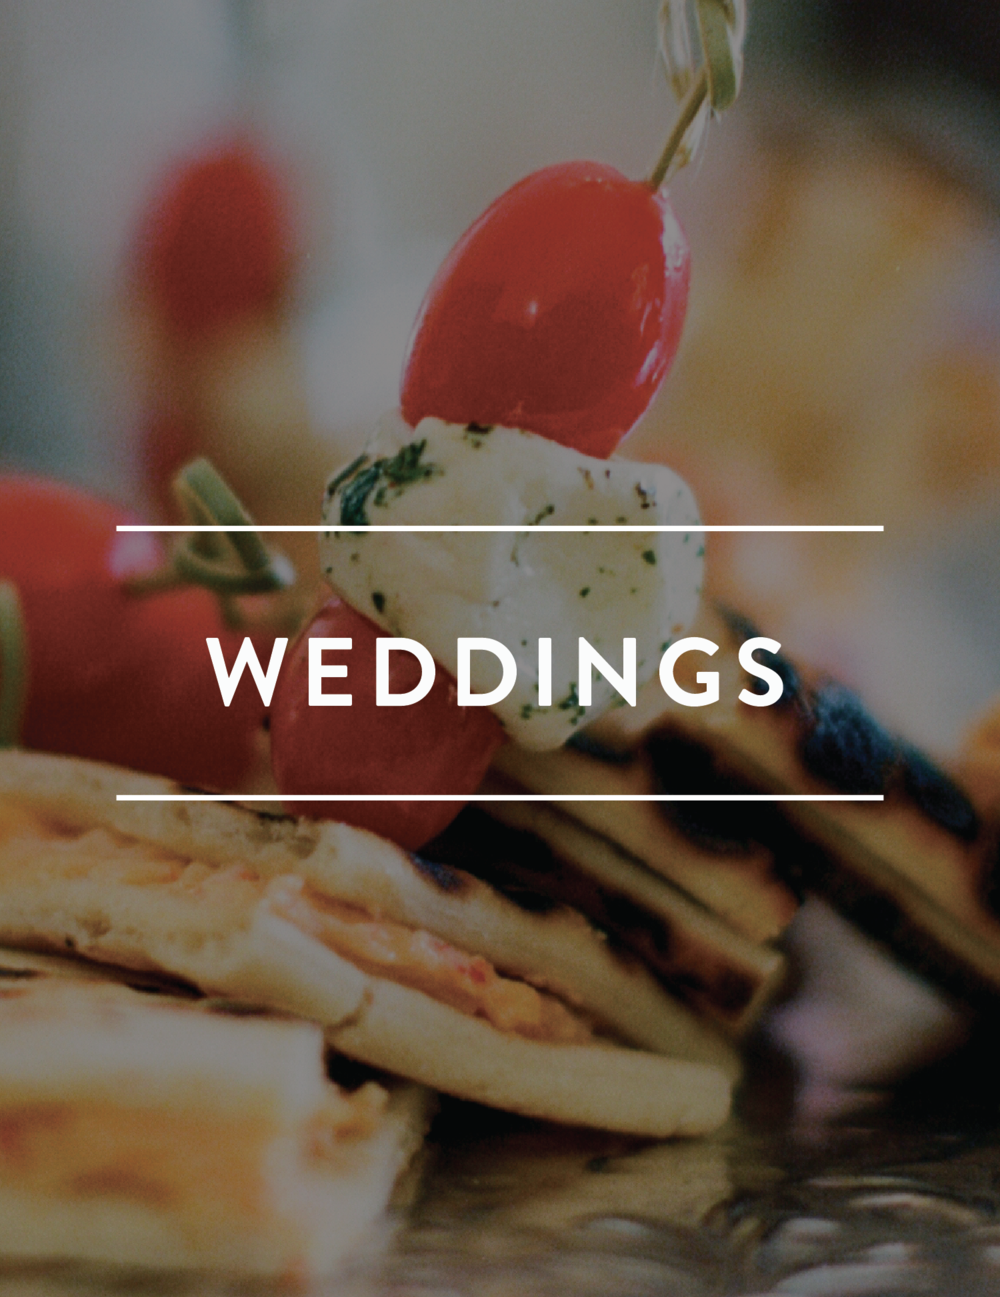 Happily Ever After starts with The Happy Catering Company. We would love to be a part of your special day. We specialize in tailoring your menu to meet your needs and budget. Happy Wife, Happy Life, Happy Catering! -